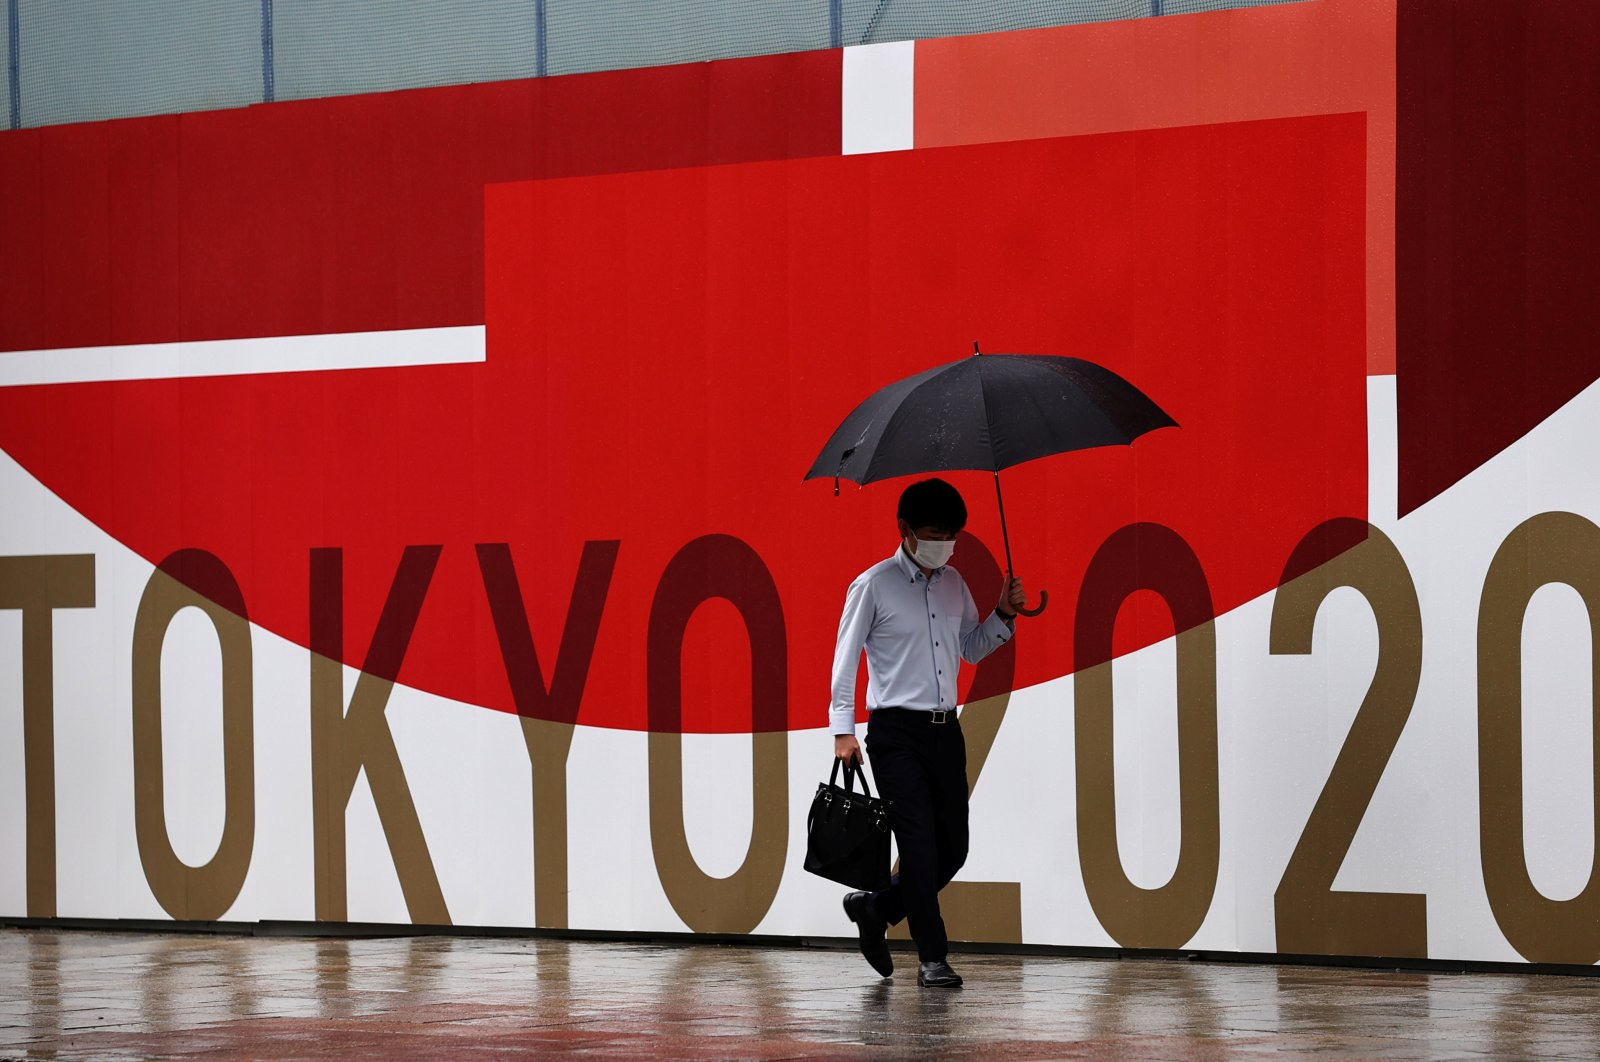 A man in a protective face mask against COVID-19 walks past a Tokyo 2020 sign in Tokyo, Japan, Aug. 8, 2021. (Reuters Photo)